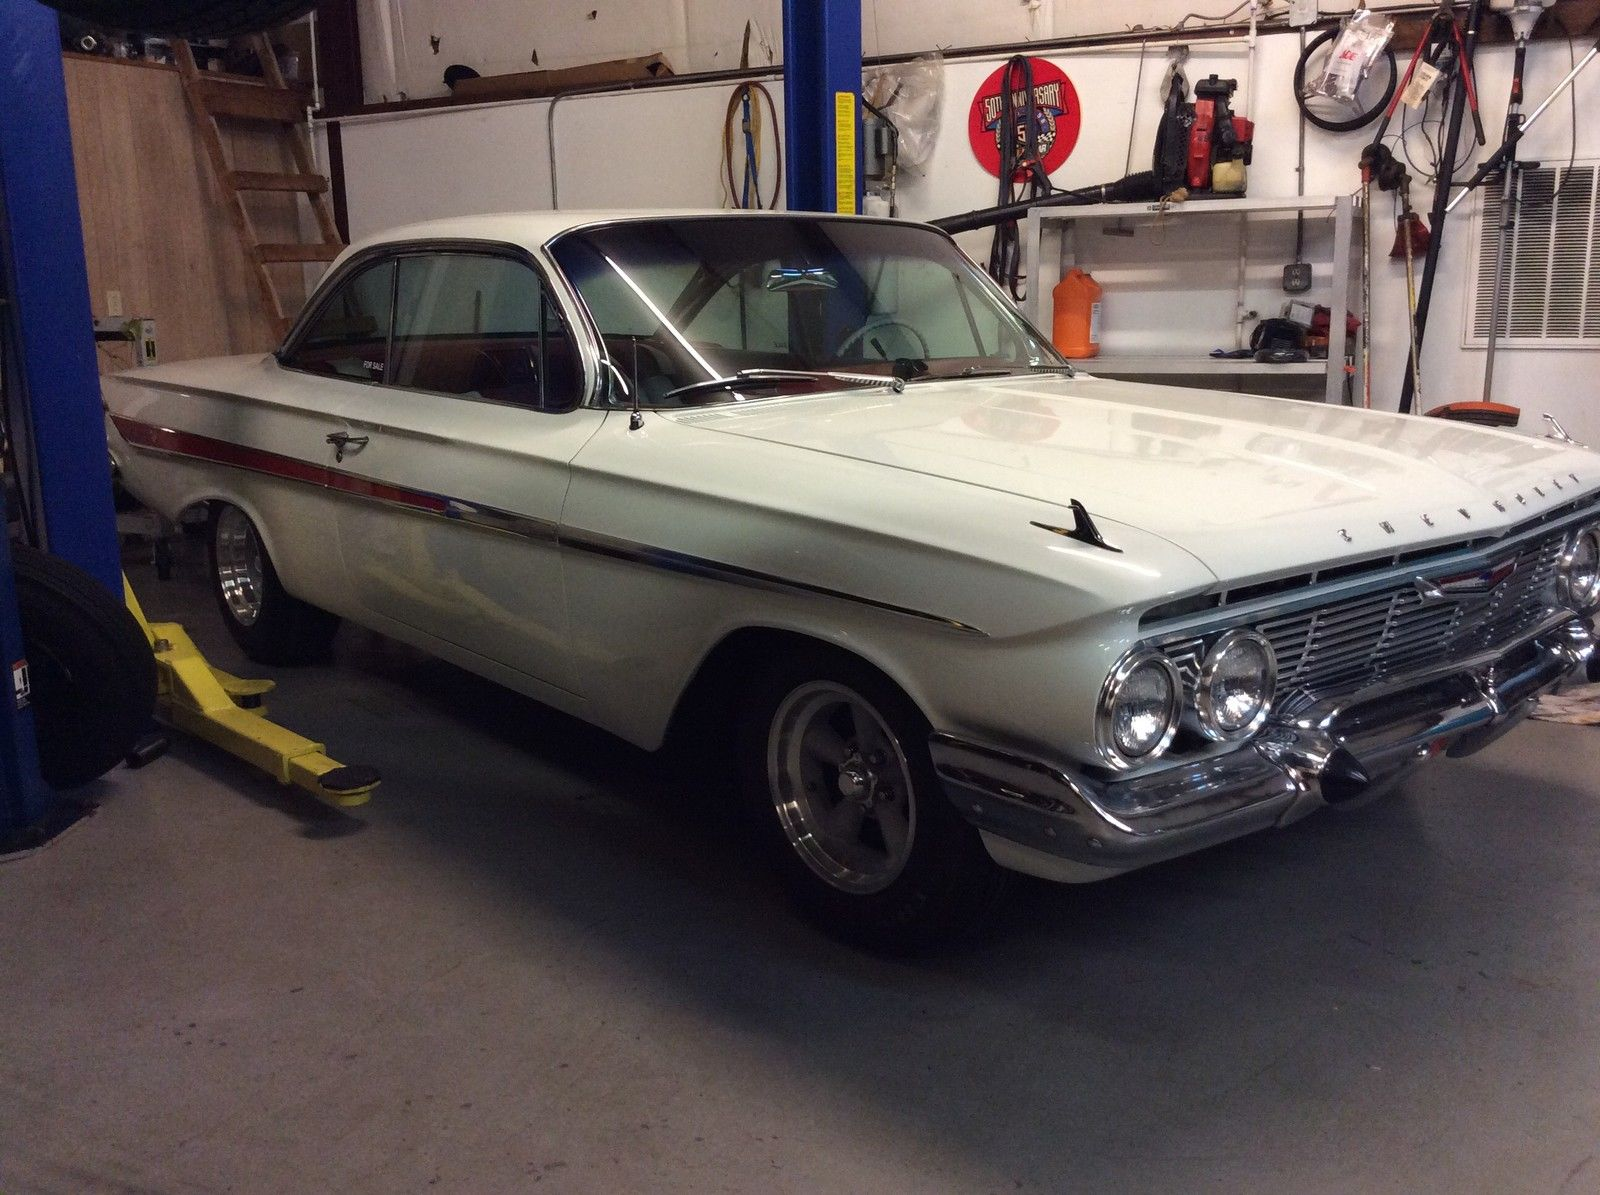 1961 Chevrolet Impala Bubble Top White With Red Interior 2 Dr Air Ps